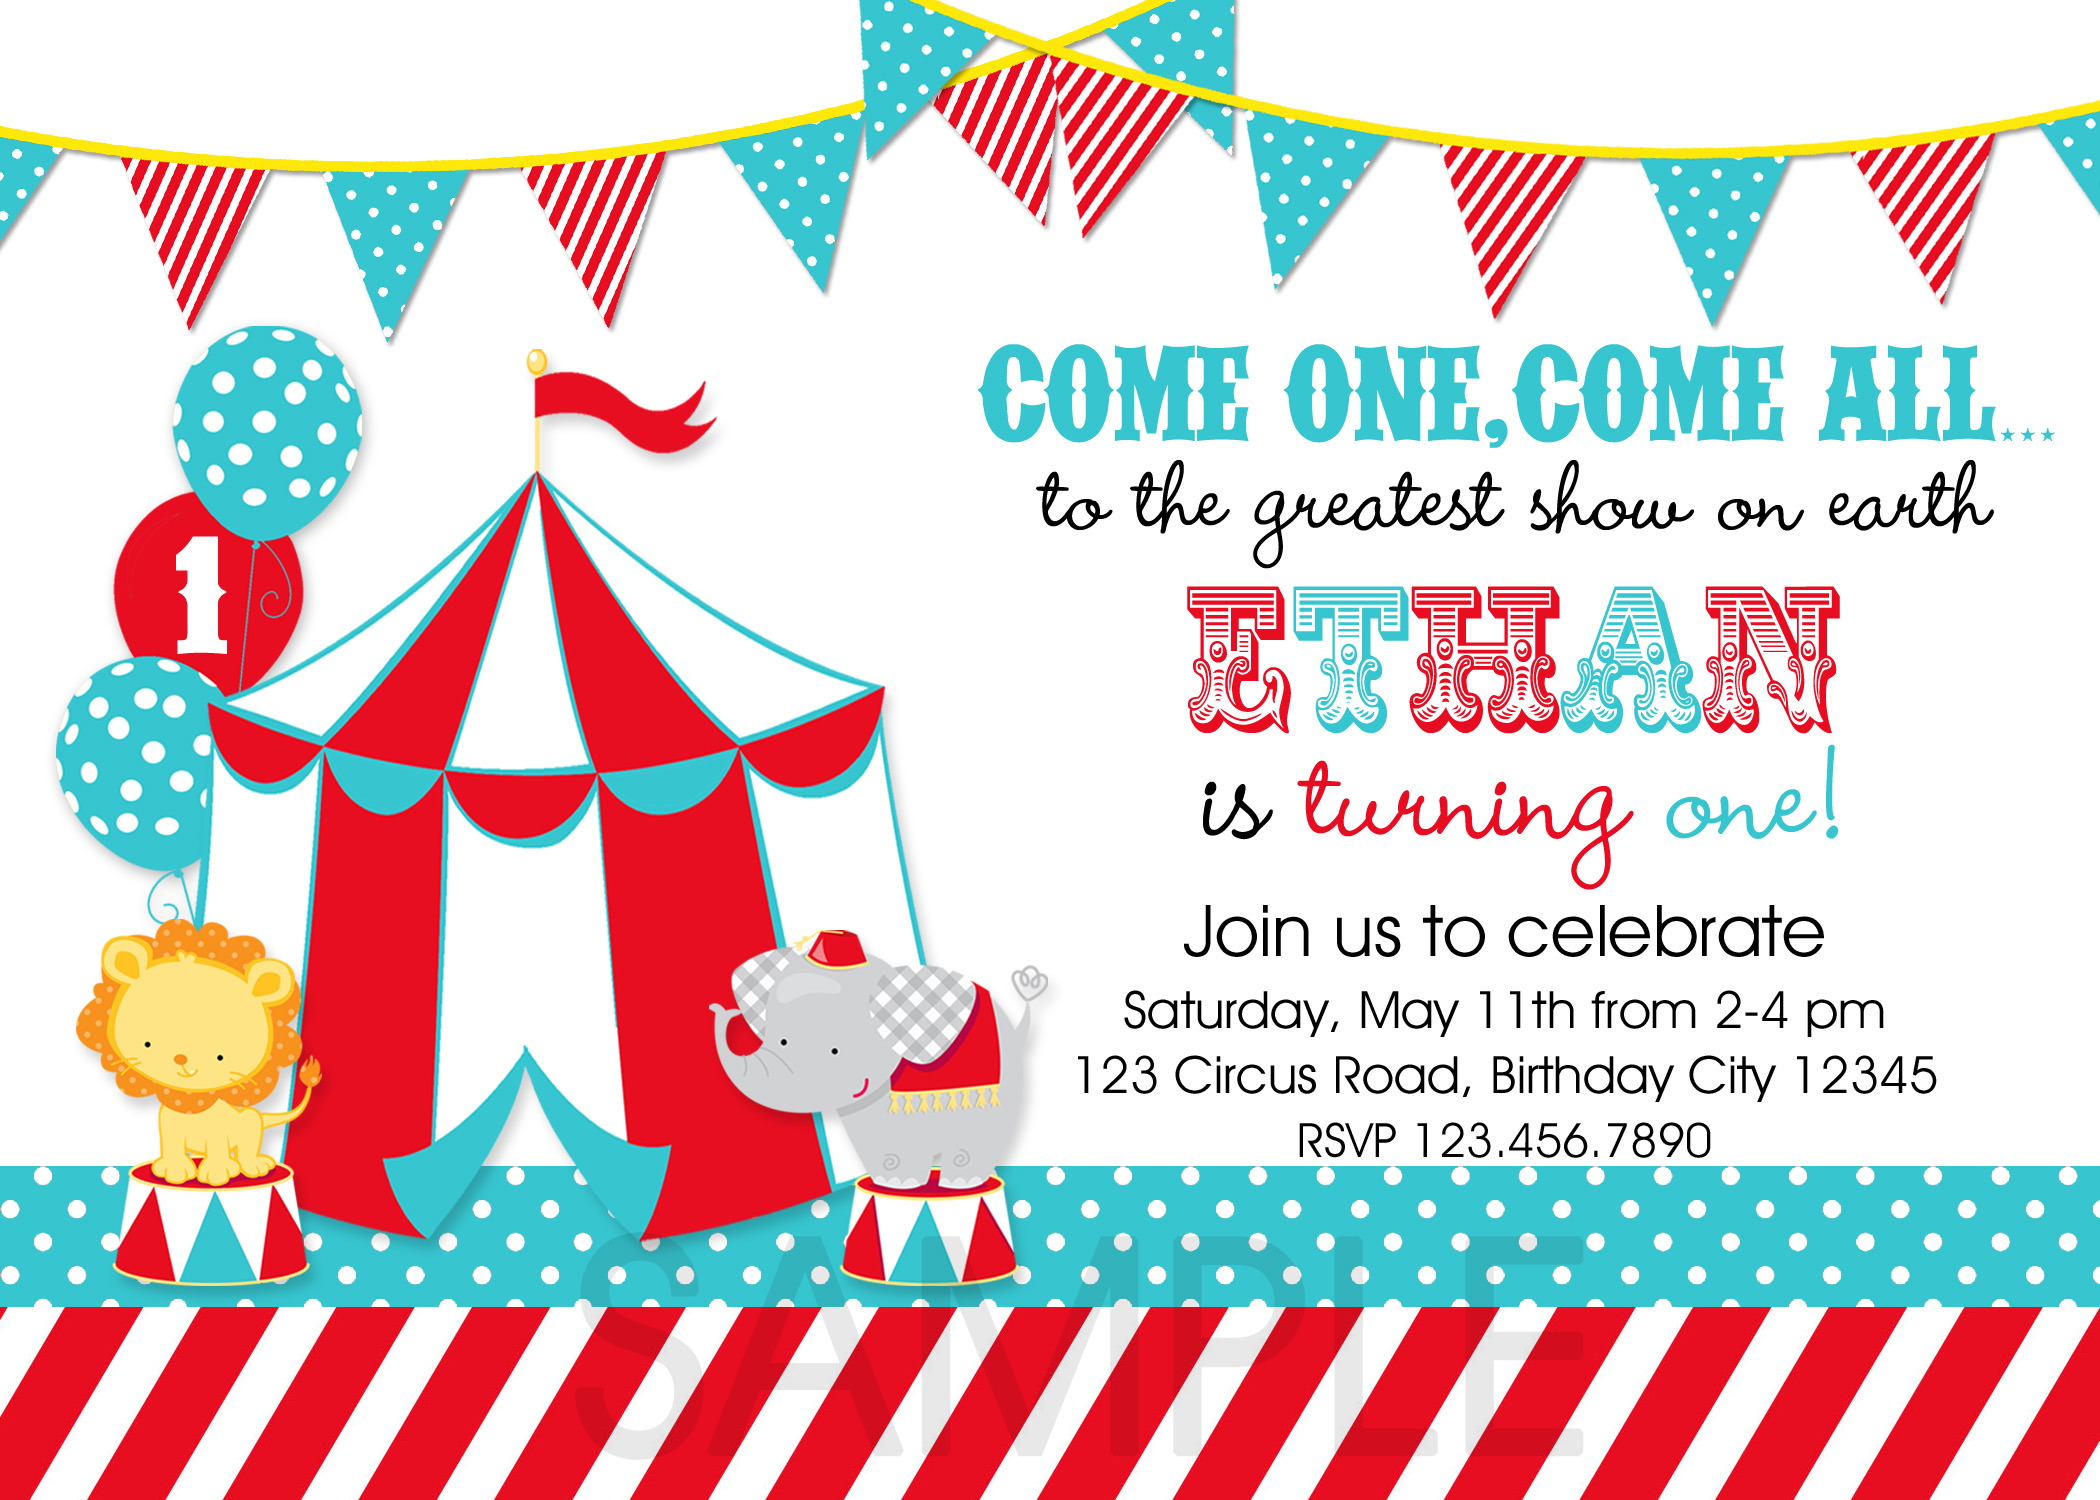 Carnival Birthday Party Invitations is an amazing ideas you had to choose for invitation design